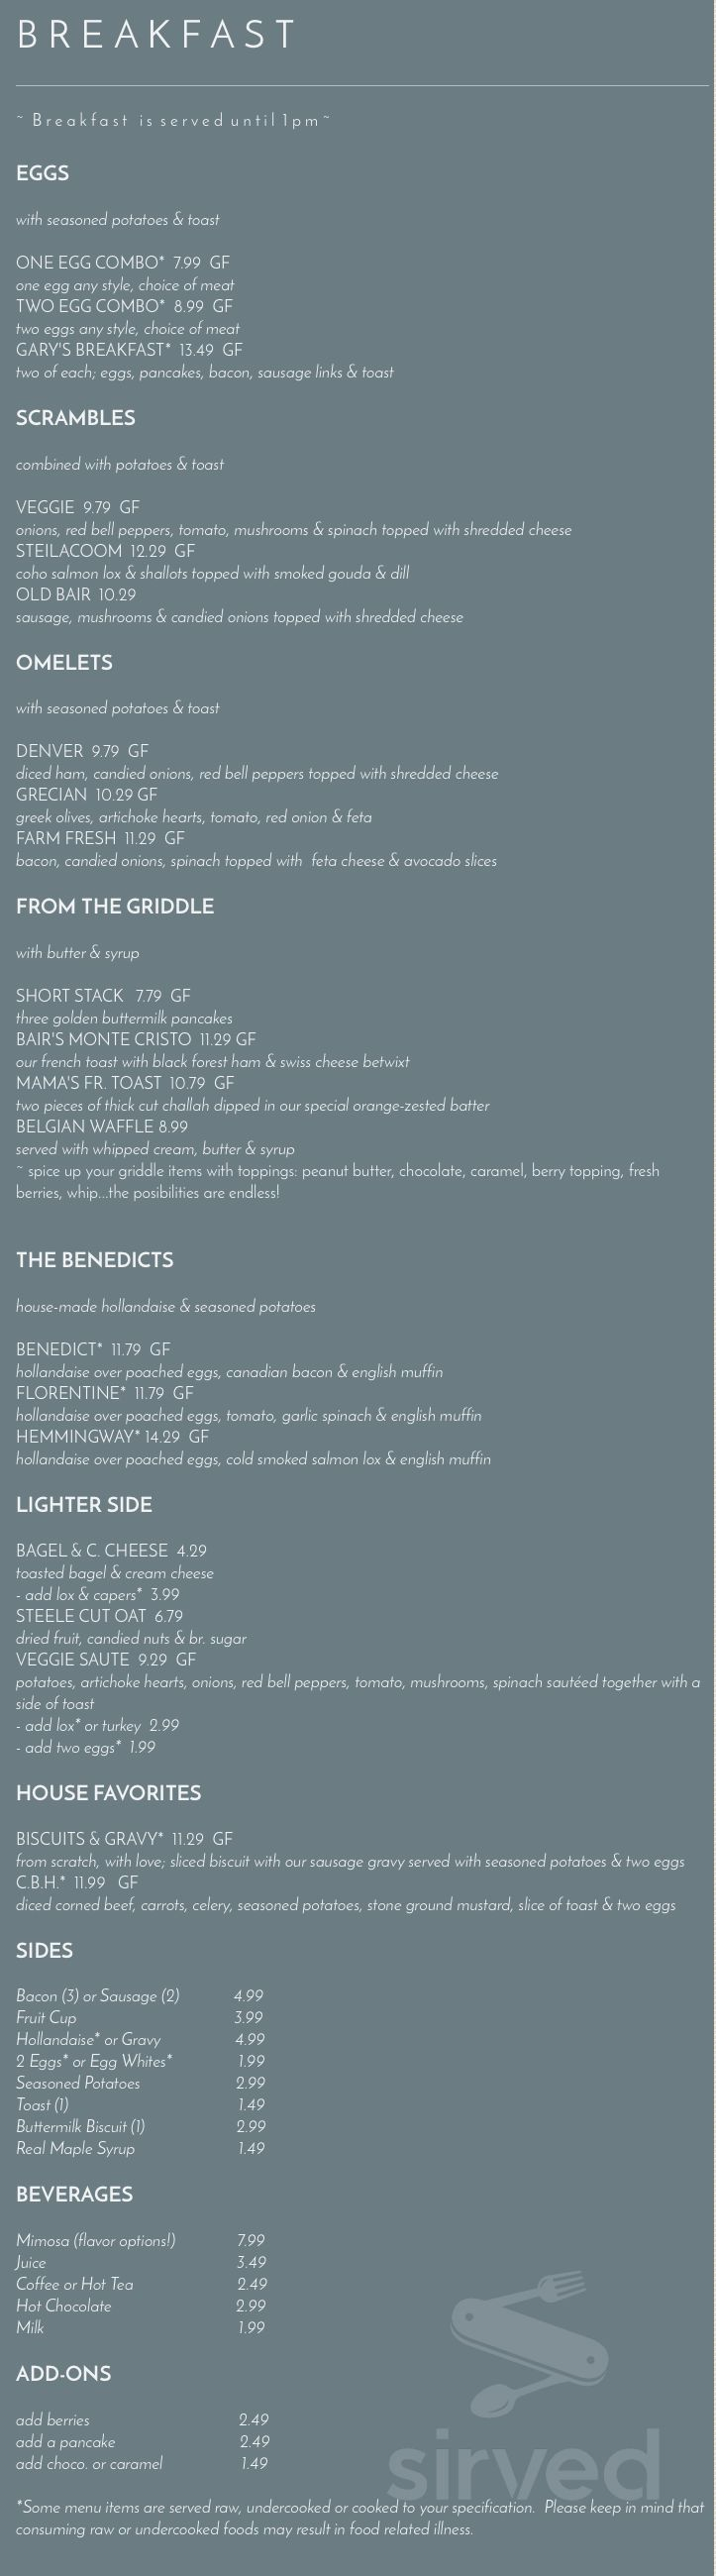 Menu for The Bair Bistro in Steilacoom, Washington, USA